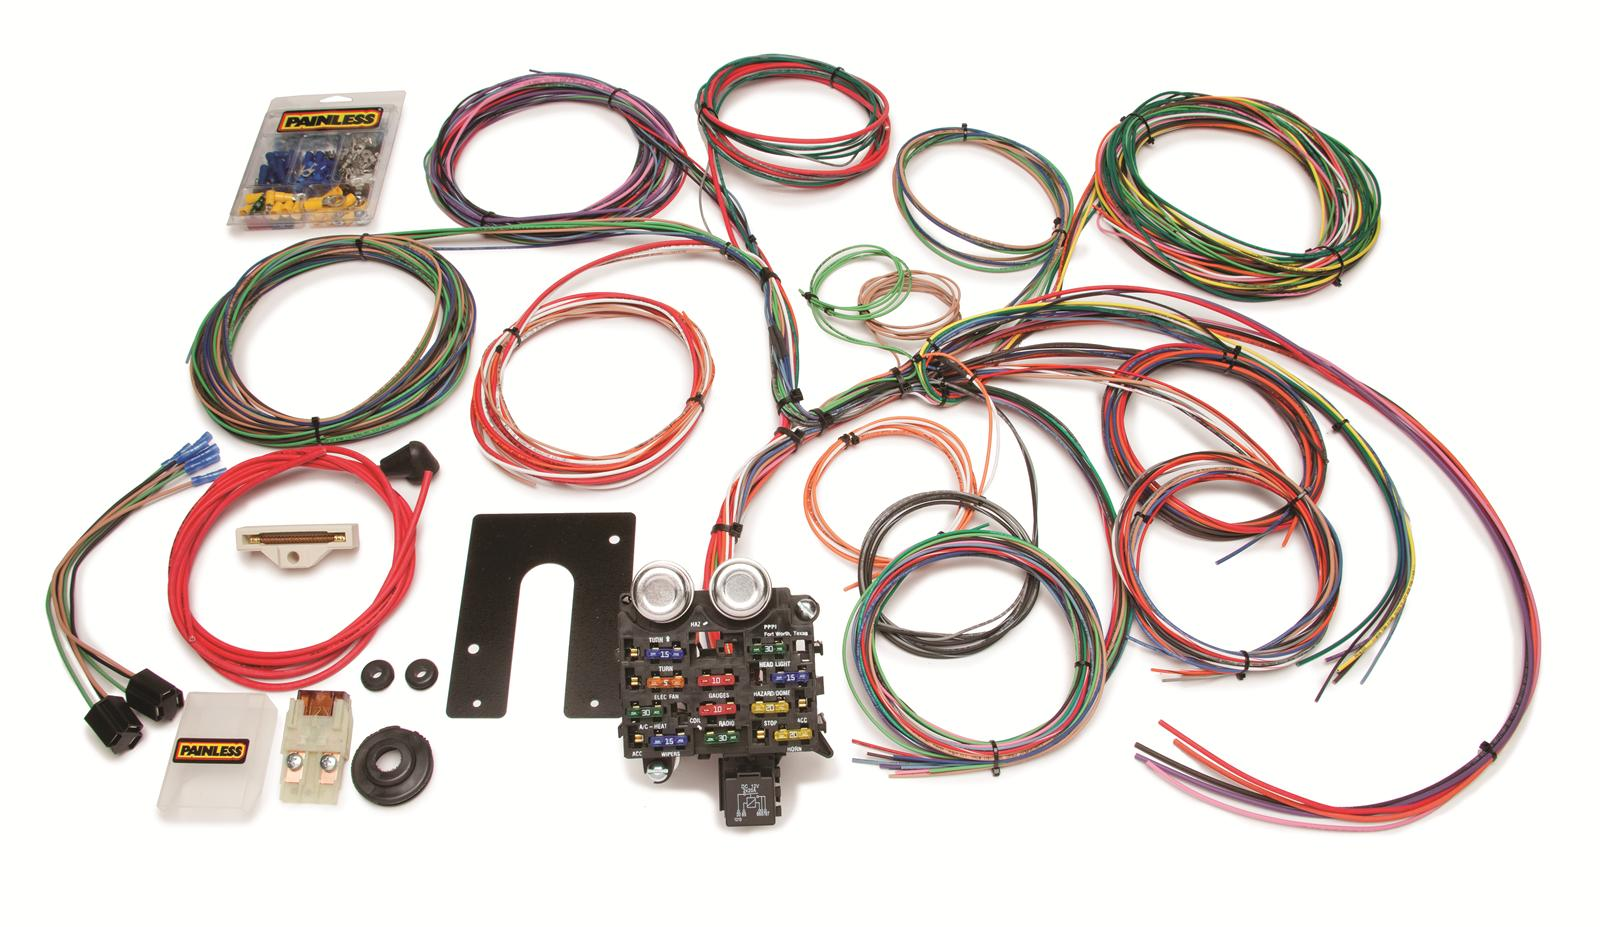 painless performance circuit jeep cj harnesses  painless performance 22 circuit jeep cj harnesses 10105 shipping on orders over 99 at summit racing